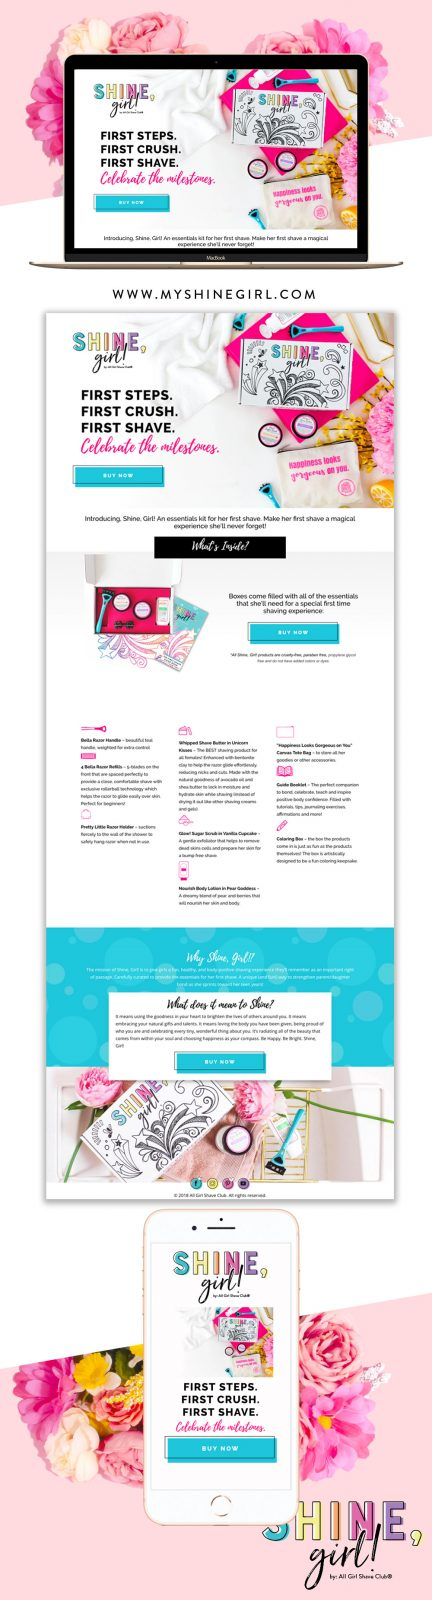 shine girl website design